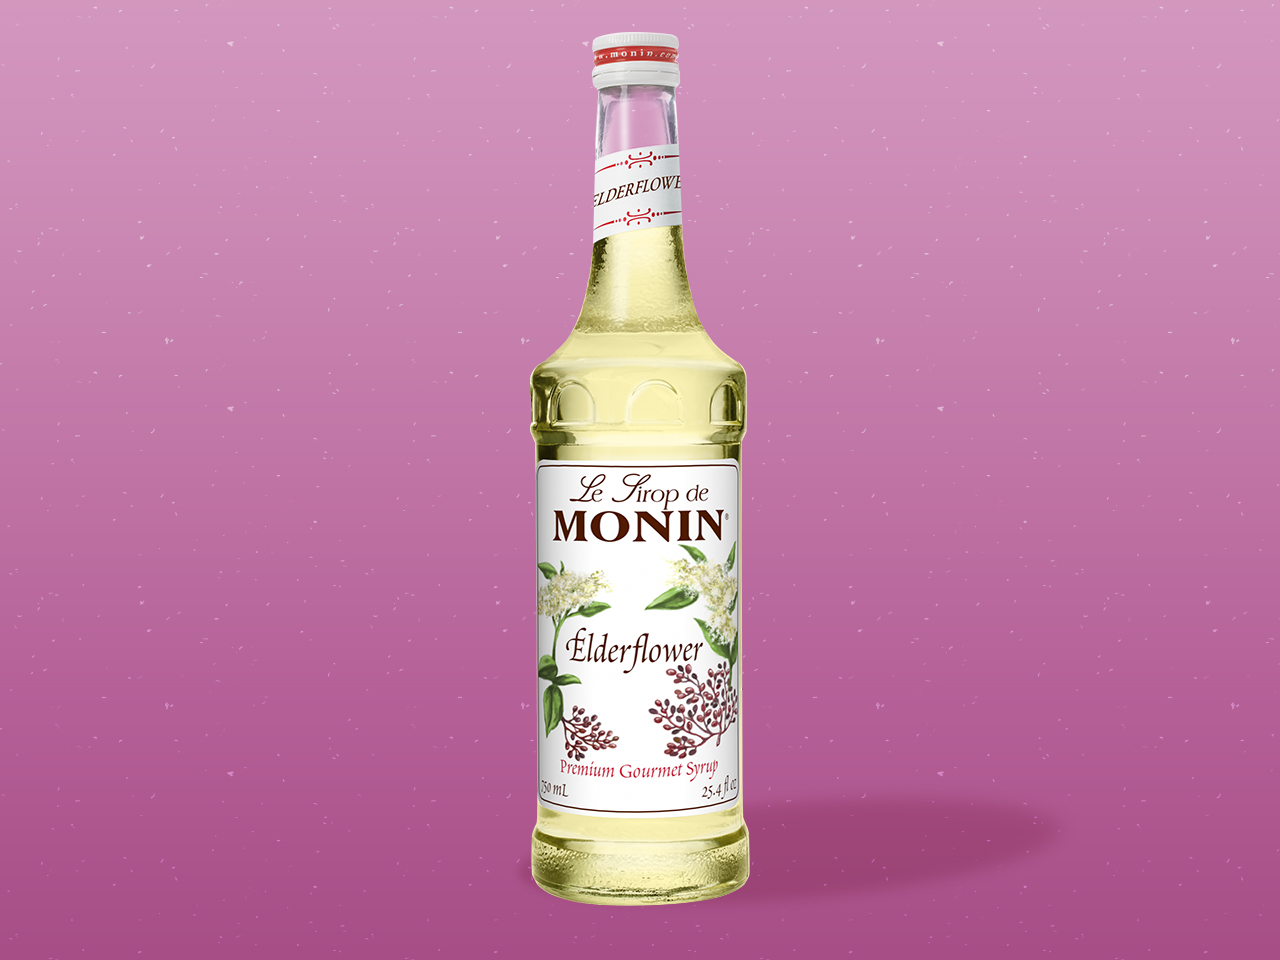 Bottle of Monin Elderflower syrup on pink background.